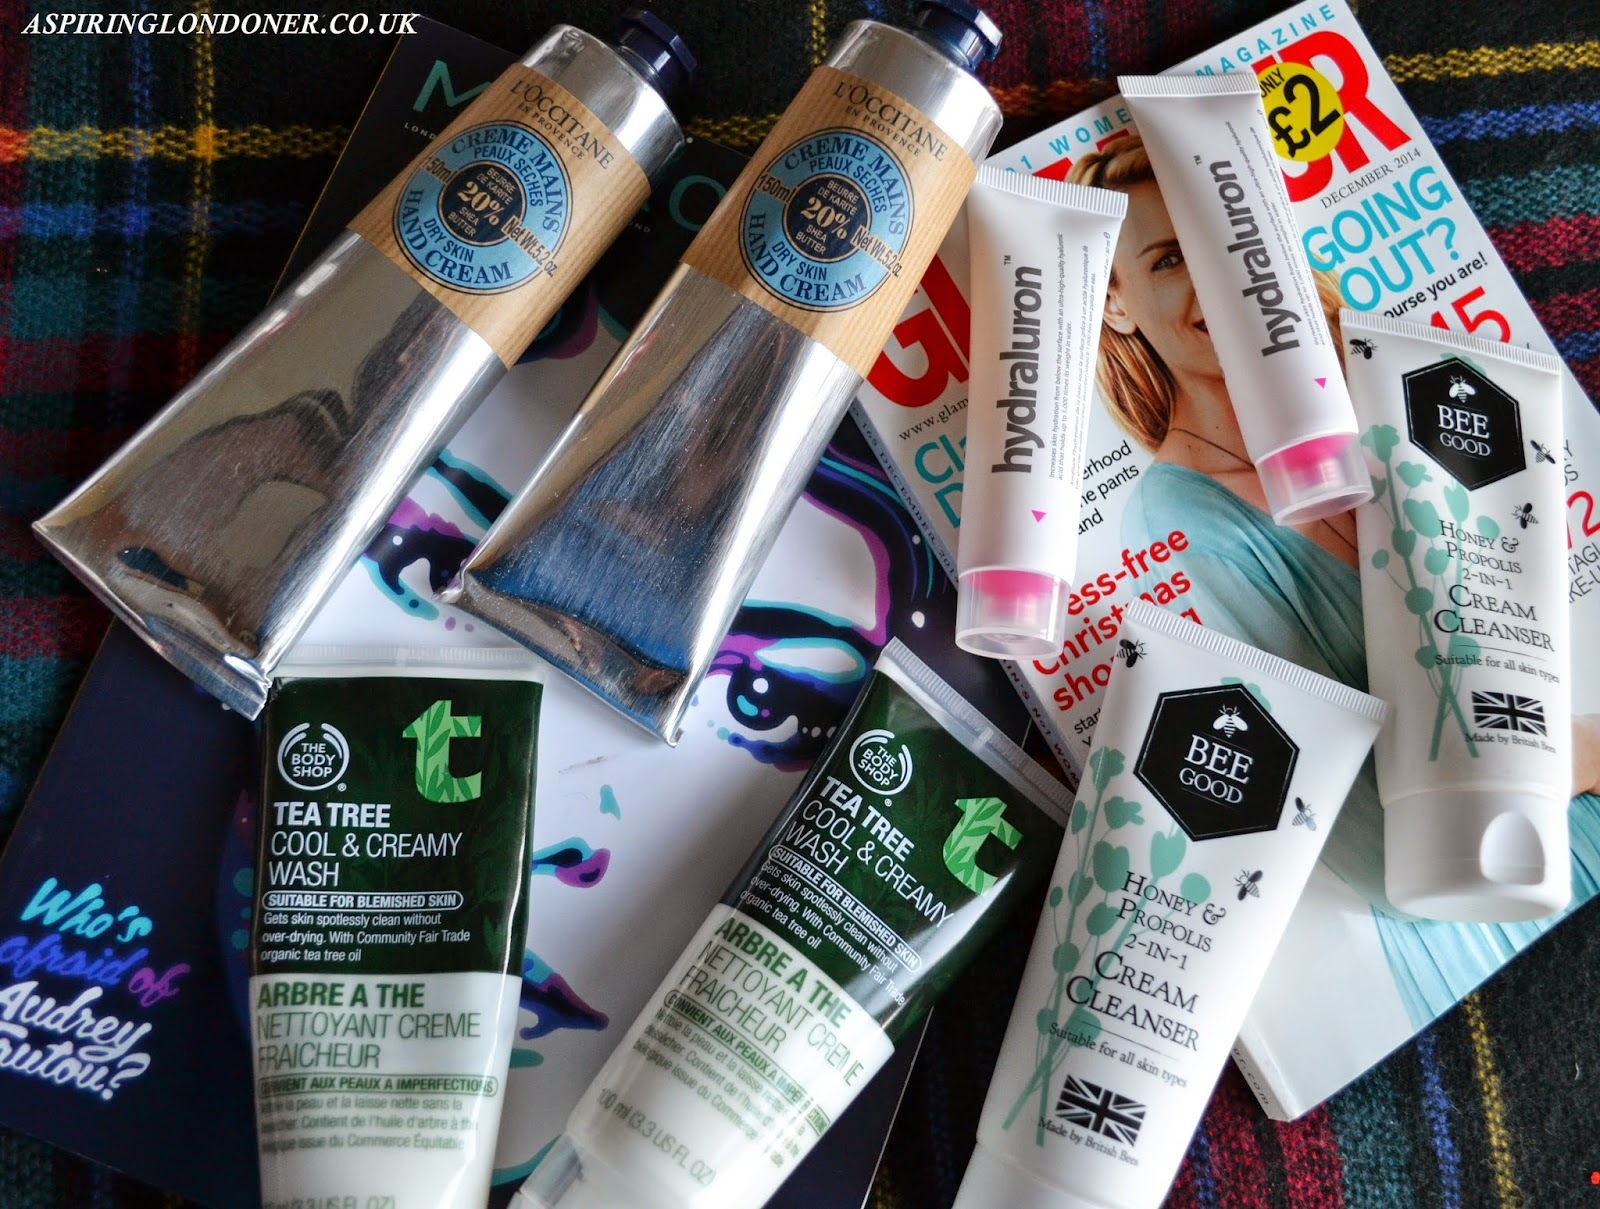 Repurchased Skincare ft. L'Occitane, Hydraluron, The Body Shop & Bee Good - Aspiring Londoner